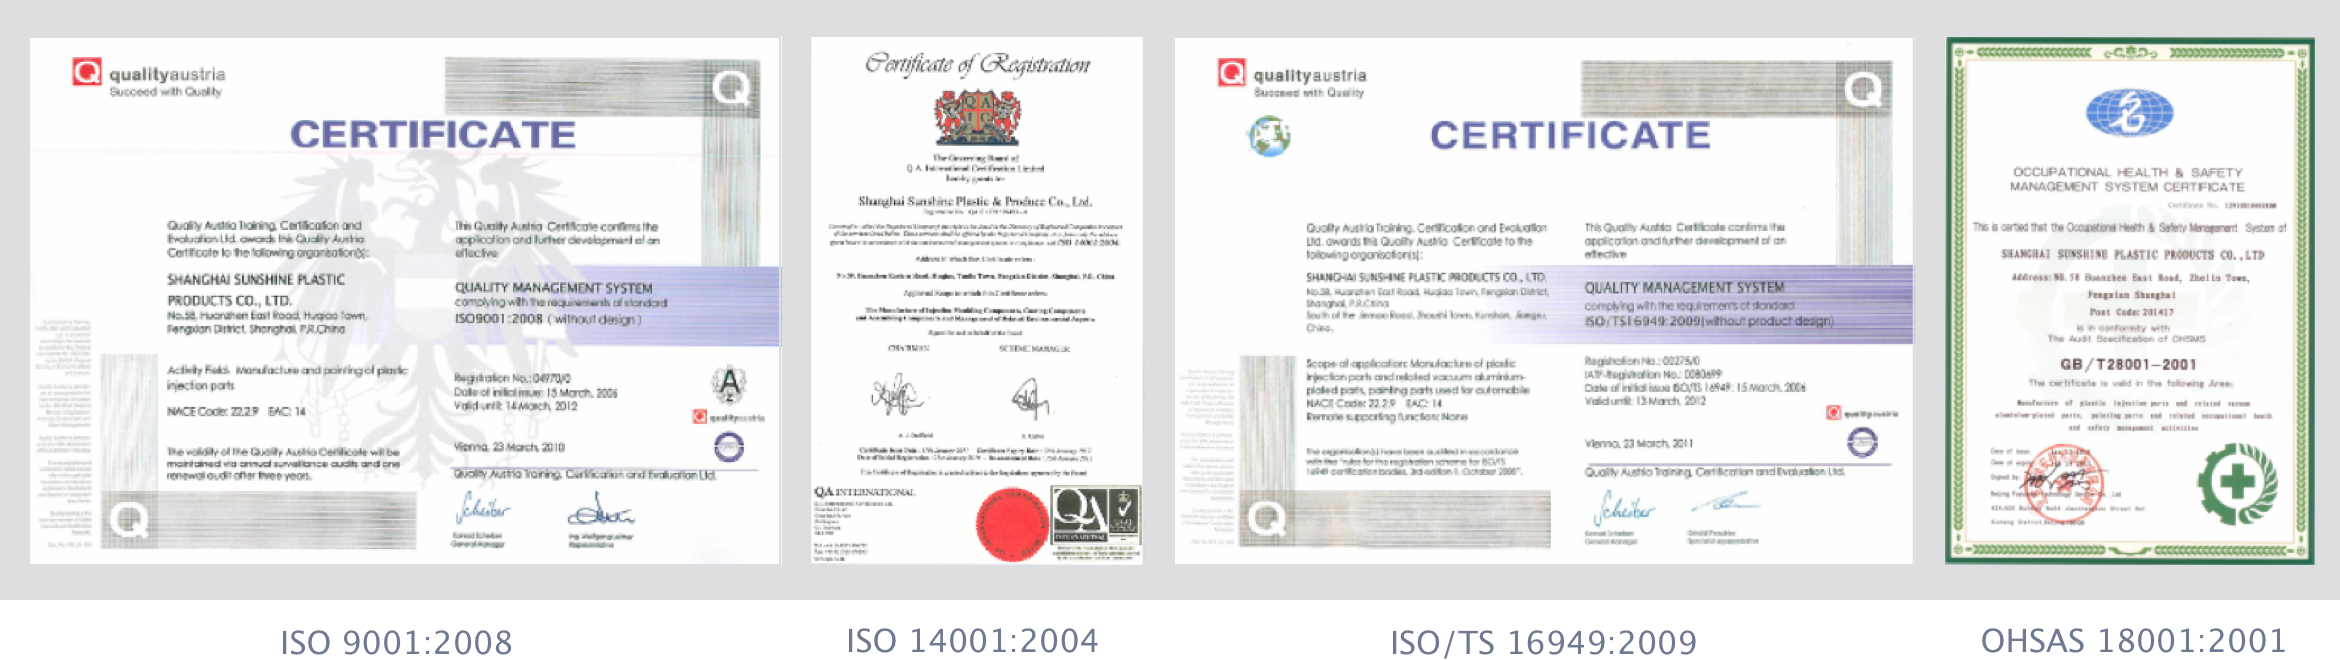 Ams ams manufacturing operations are isots16949 certified and perform 100 final inspection of products we have over 30 years of experience in supplier 1betcityfo Gallery